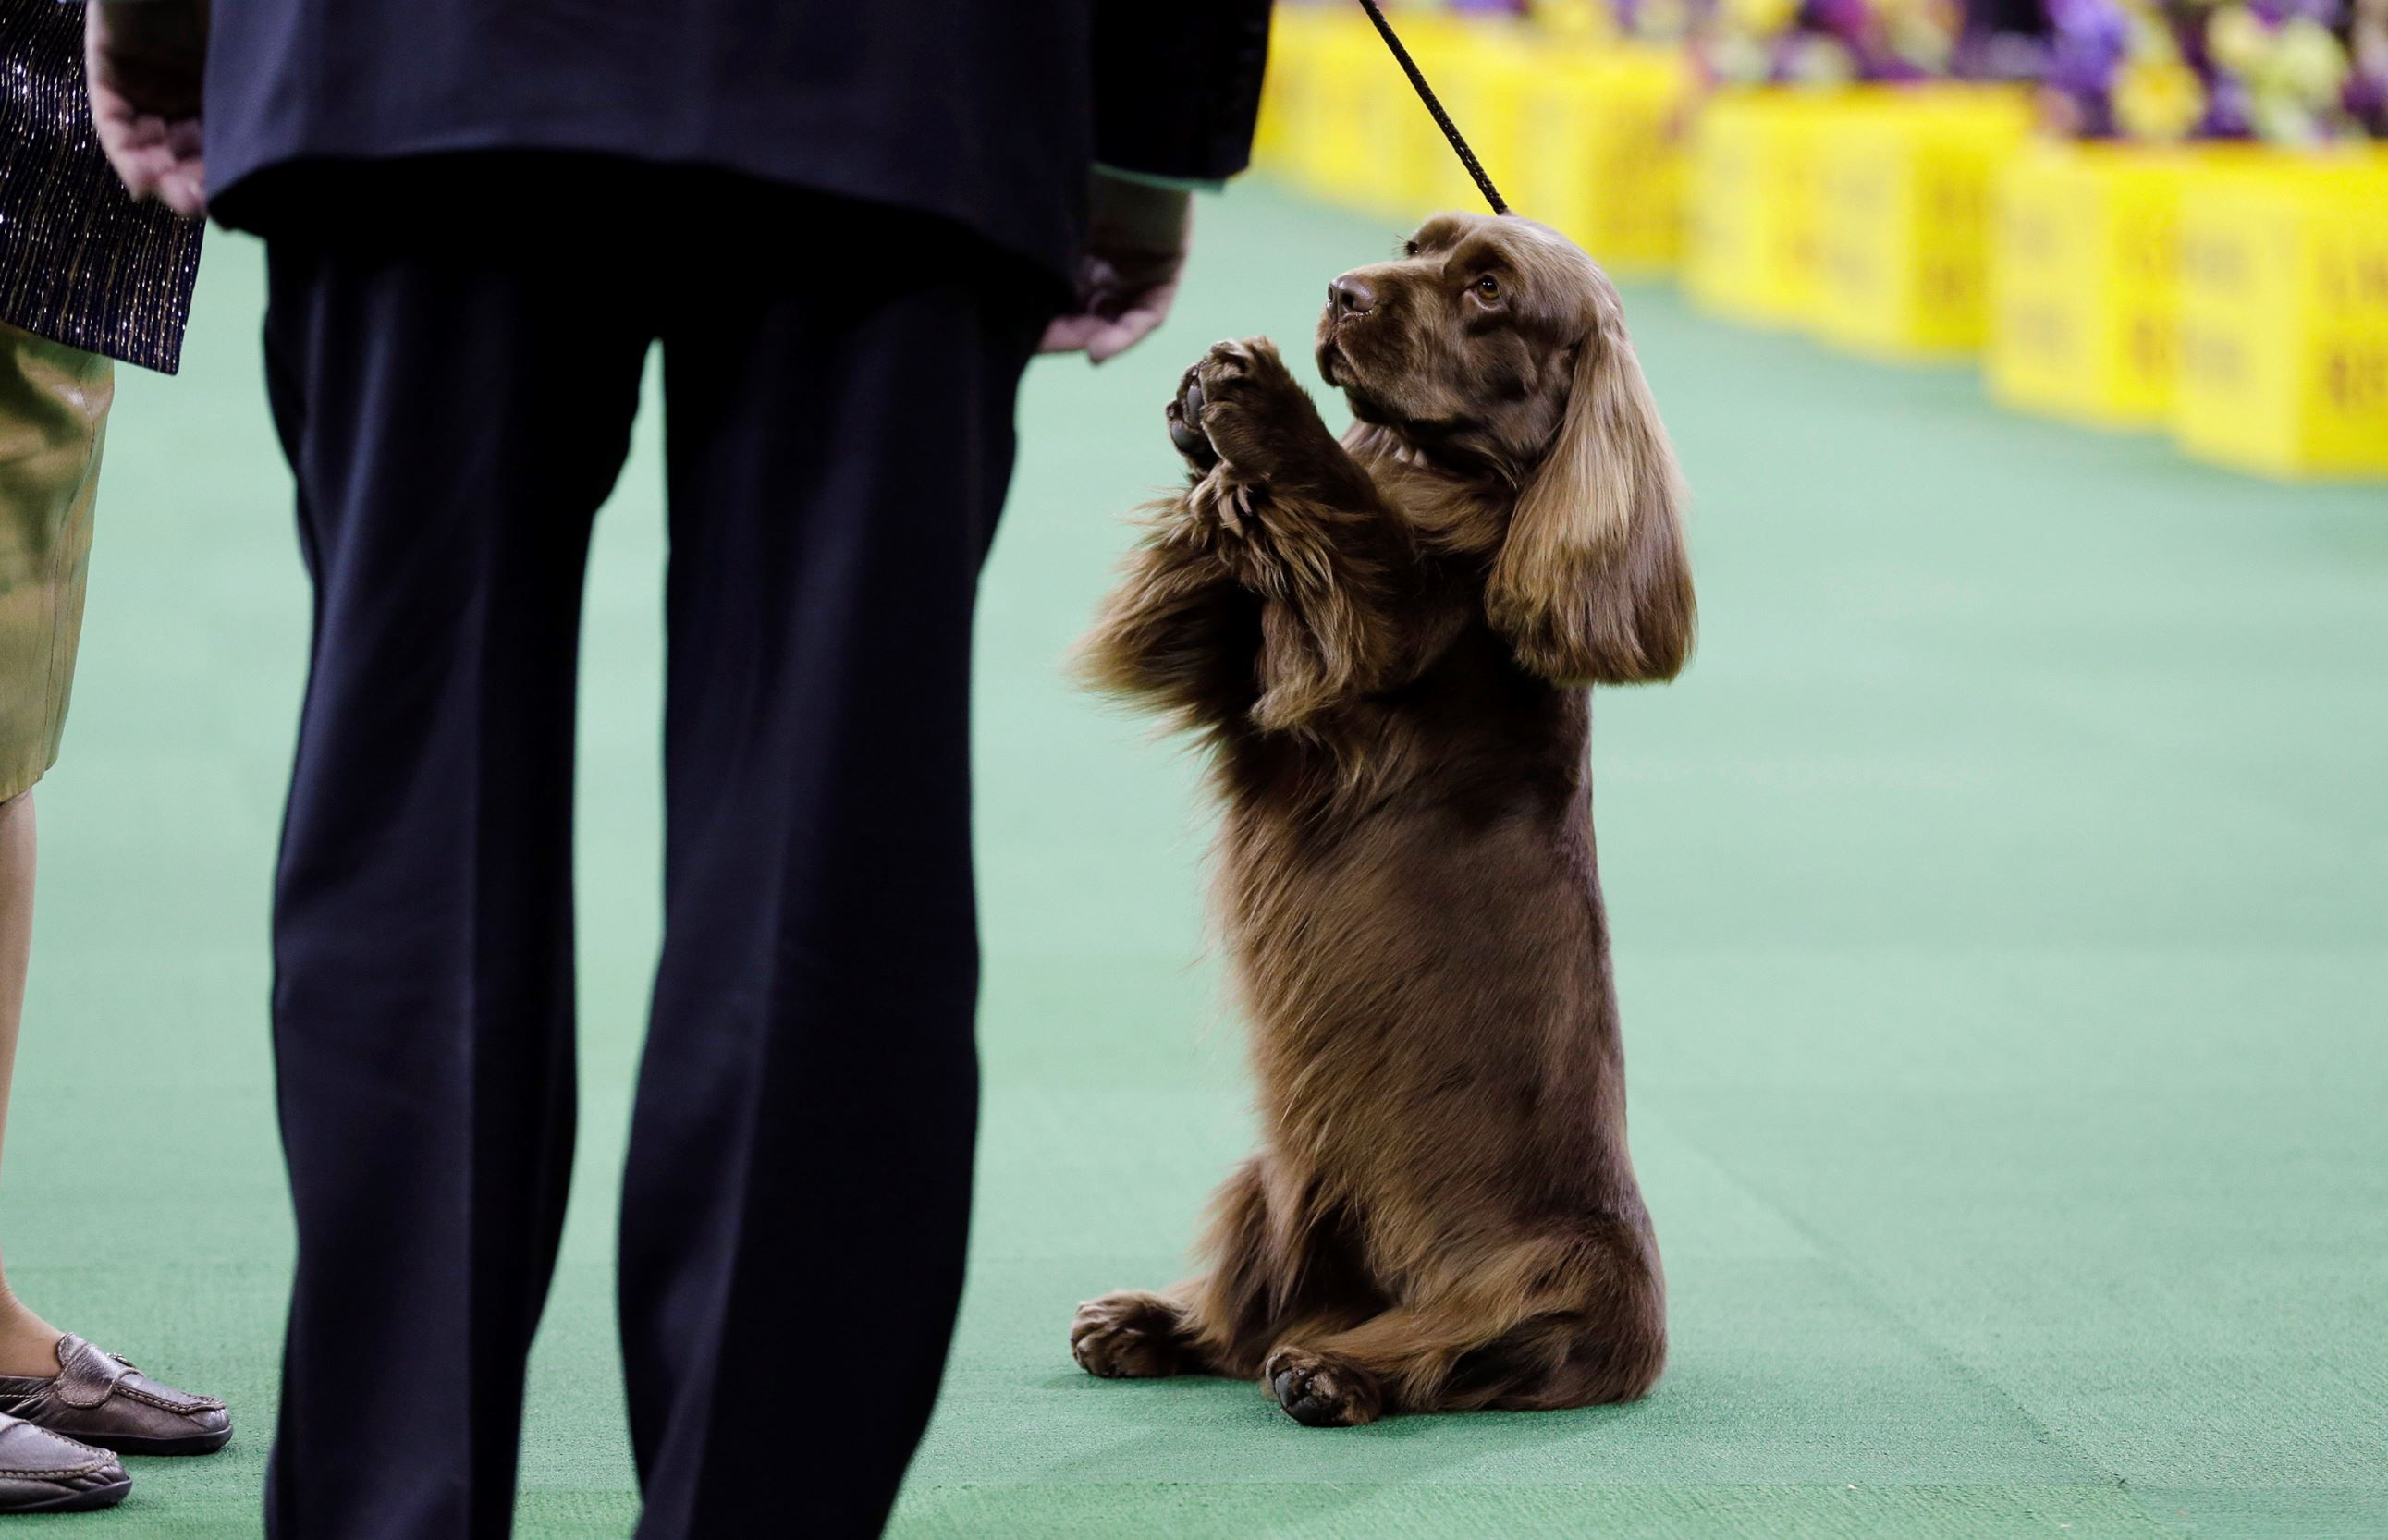 Pictures From Westminister Dog Show